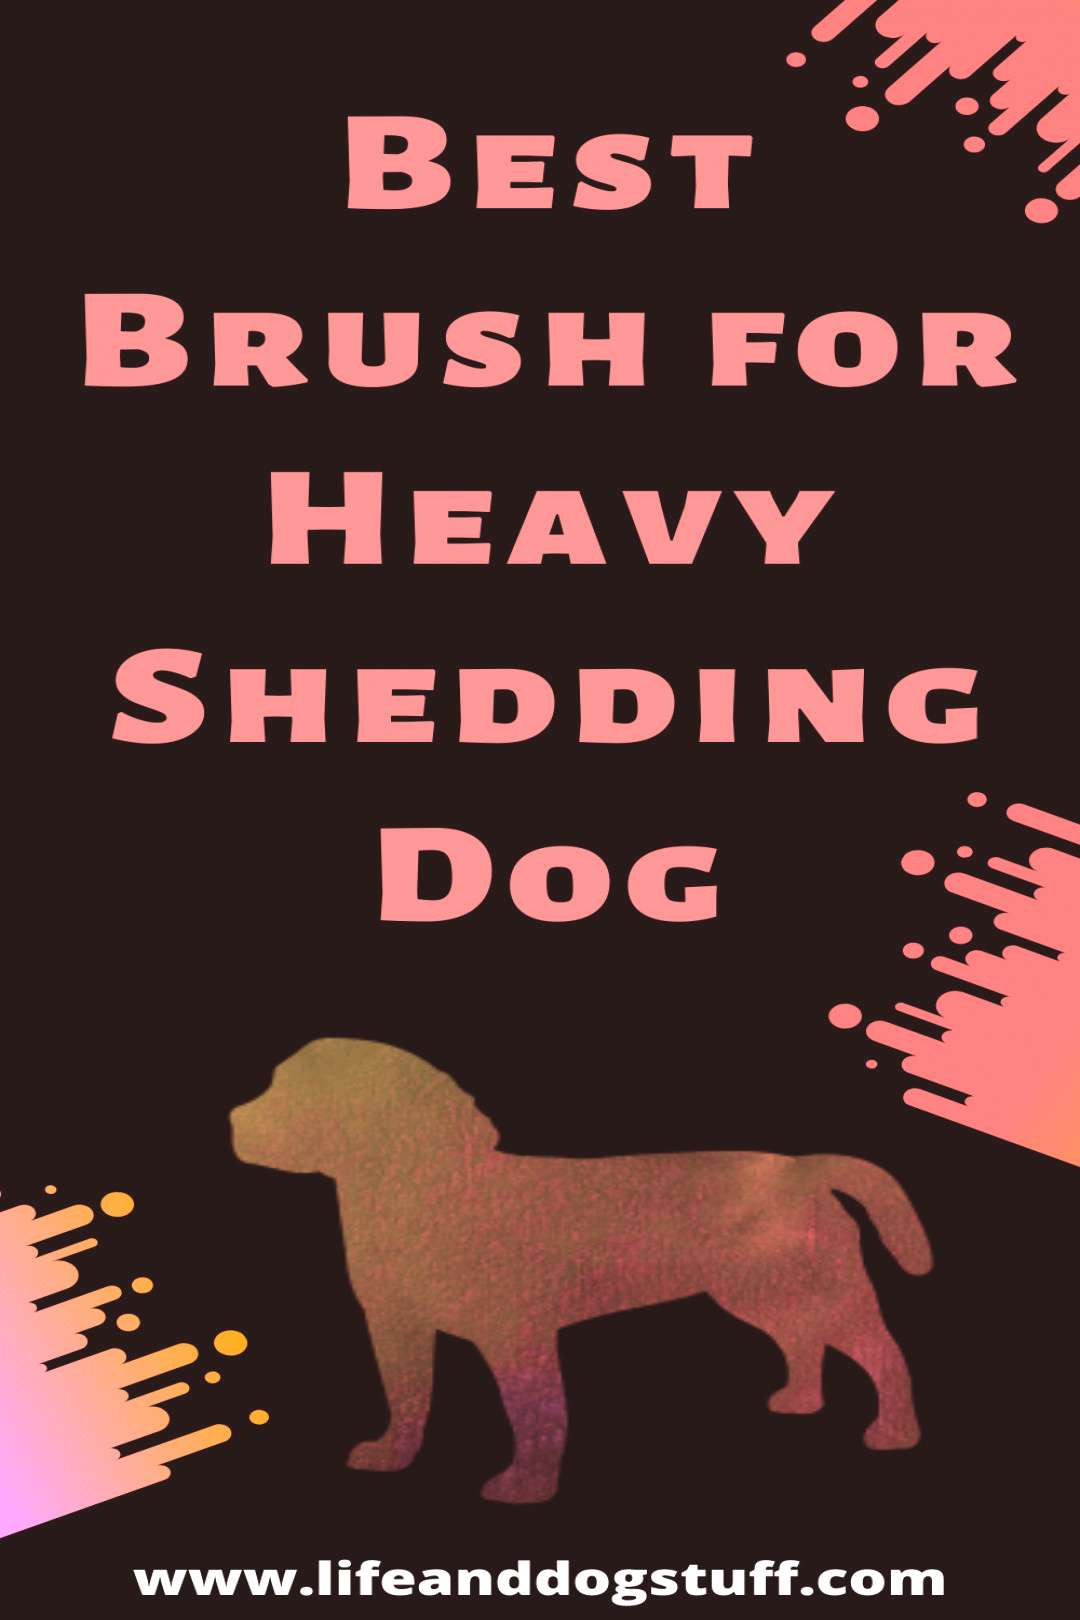 Best Brush for Heavy Shedding Dog - Fluffy's reviews Best Brush for Heavy Shedding Dog Review | Lif